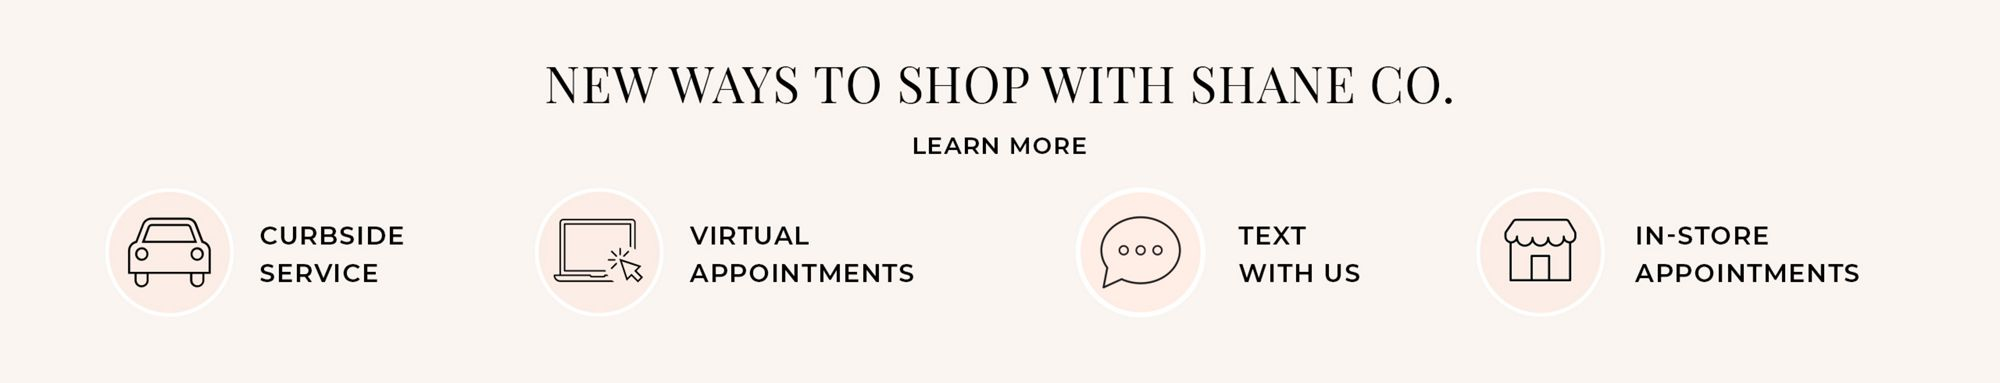 New Ways to Shop with Shane Co.